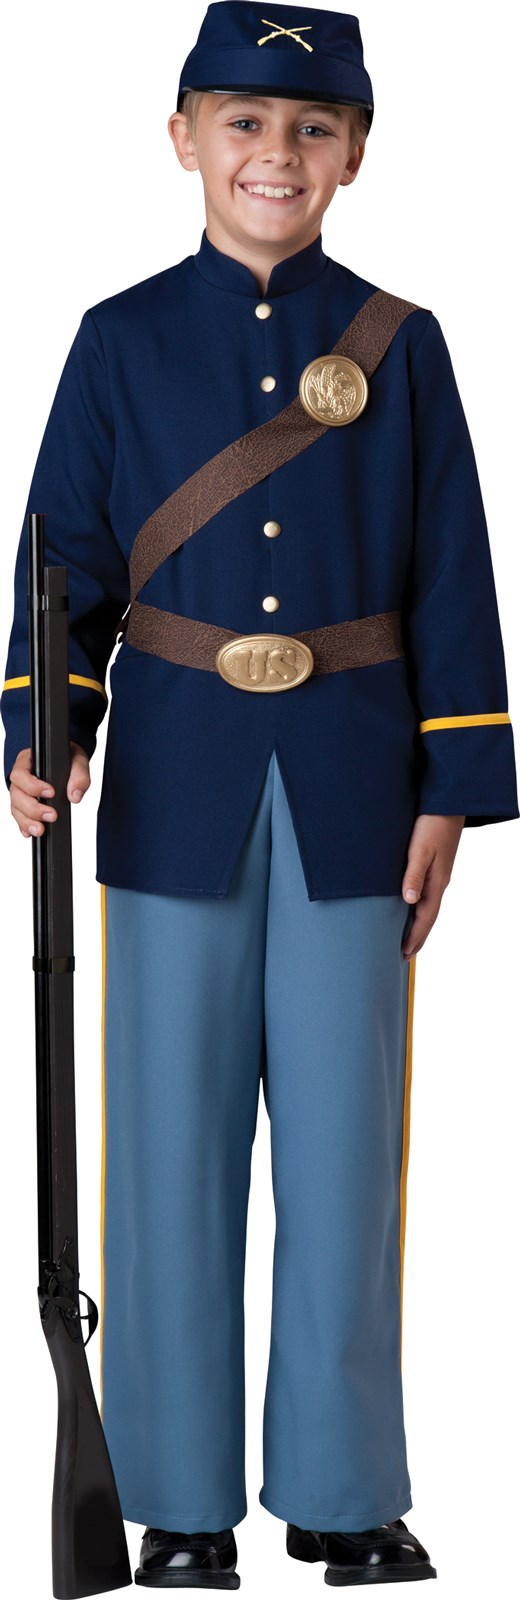 Image of Civil War Soldier Child Costume